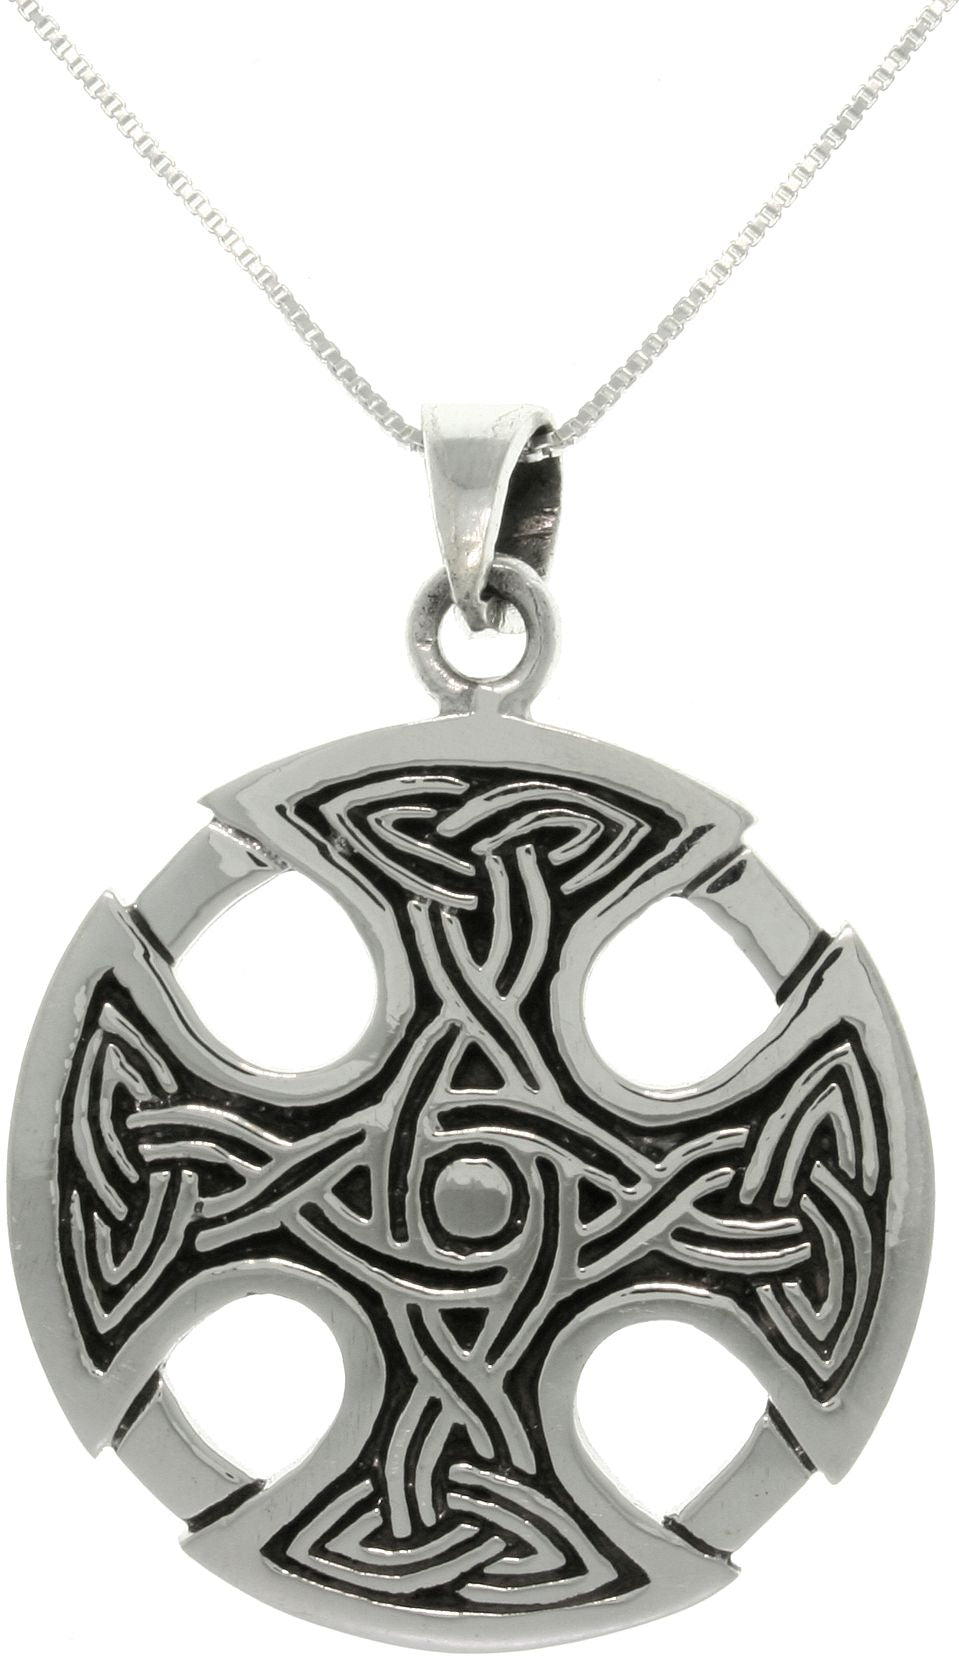 Jewelry Trends Silver Celtic Medallion Cross Pendant With 18 Inch Chain Necklace